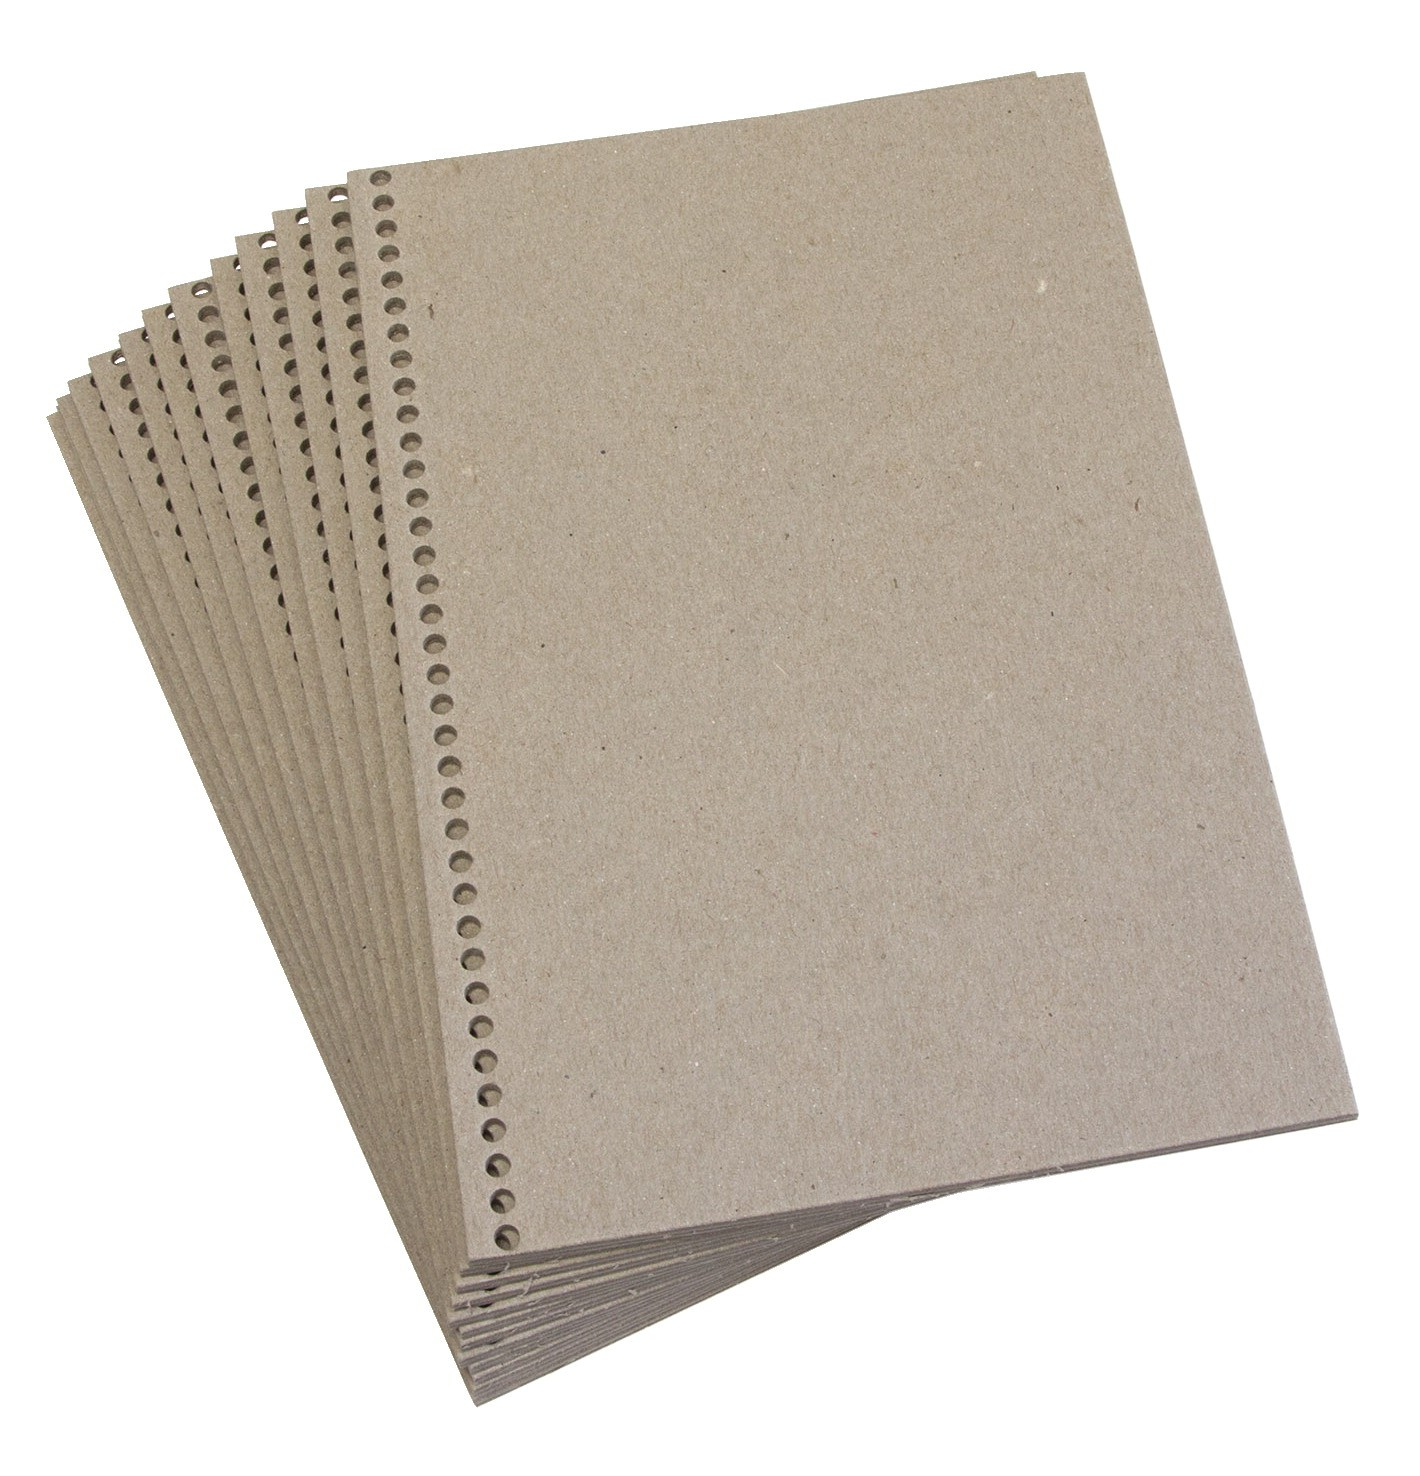 "Sax Book Making Chipboard Cover, 6 X 9"", Pre-punched for Plastic Binding Spines - 24/Pkg"